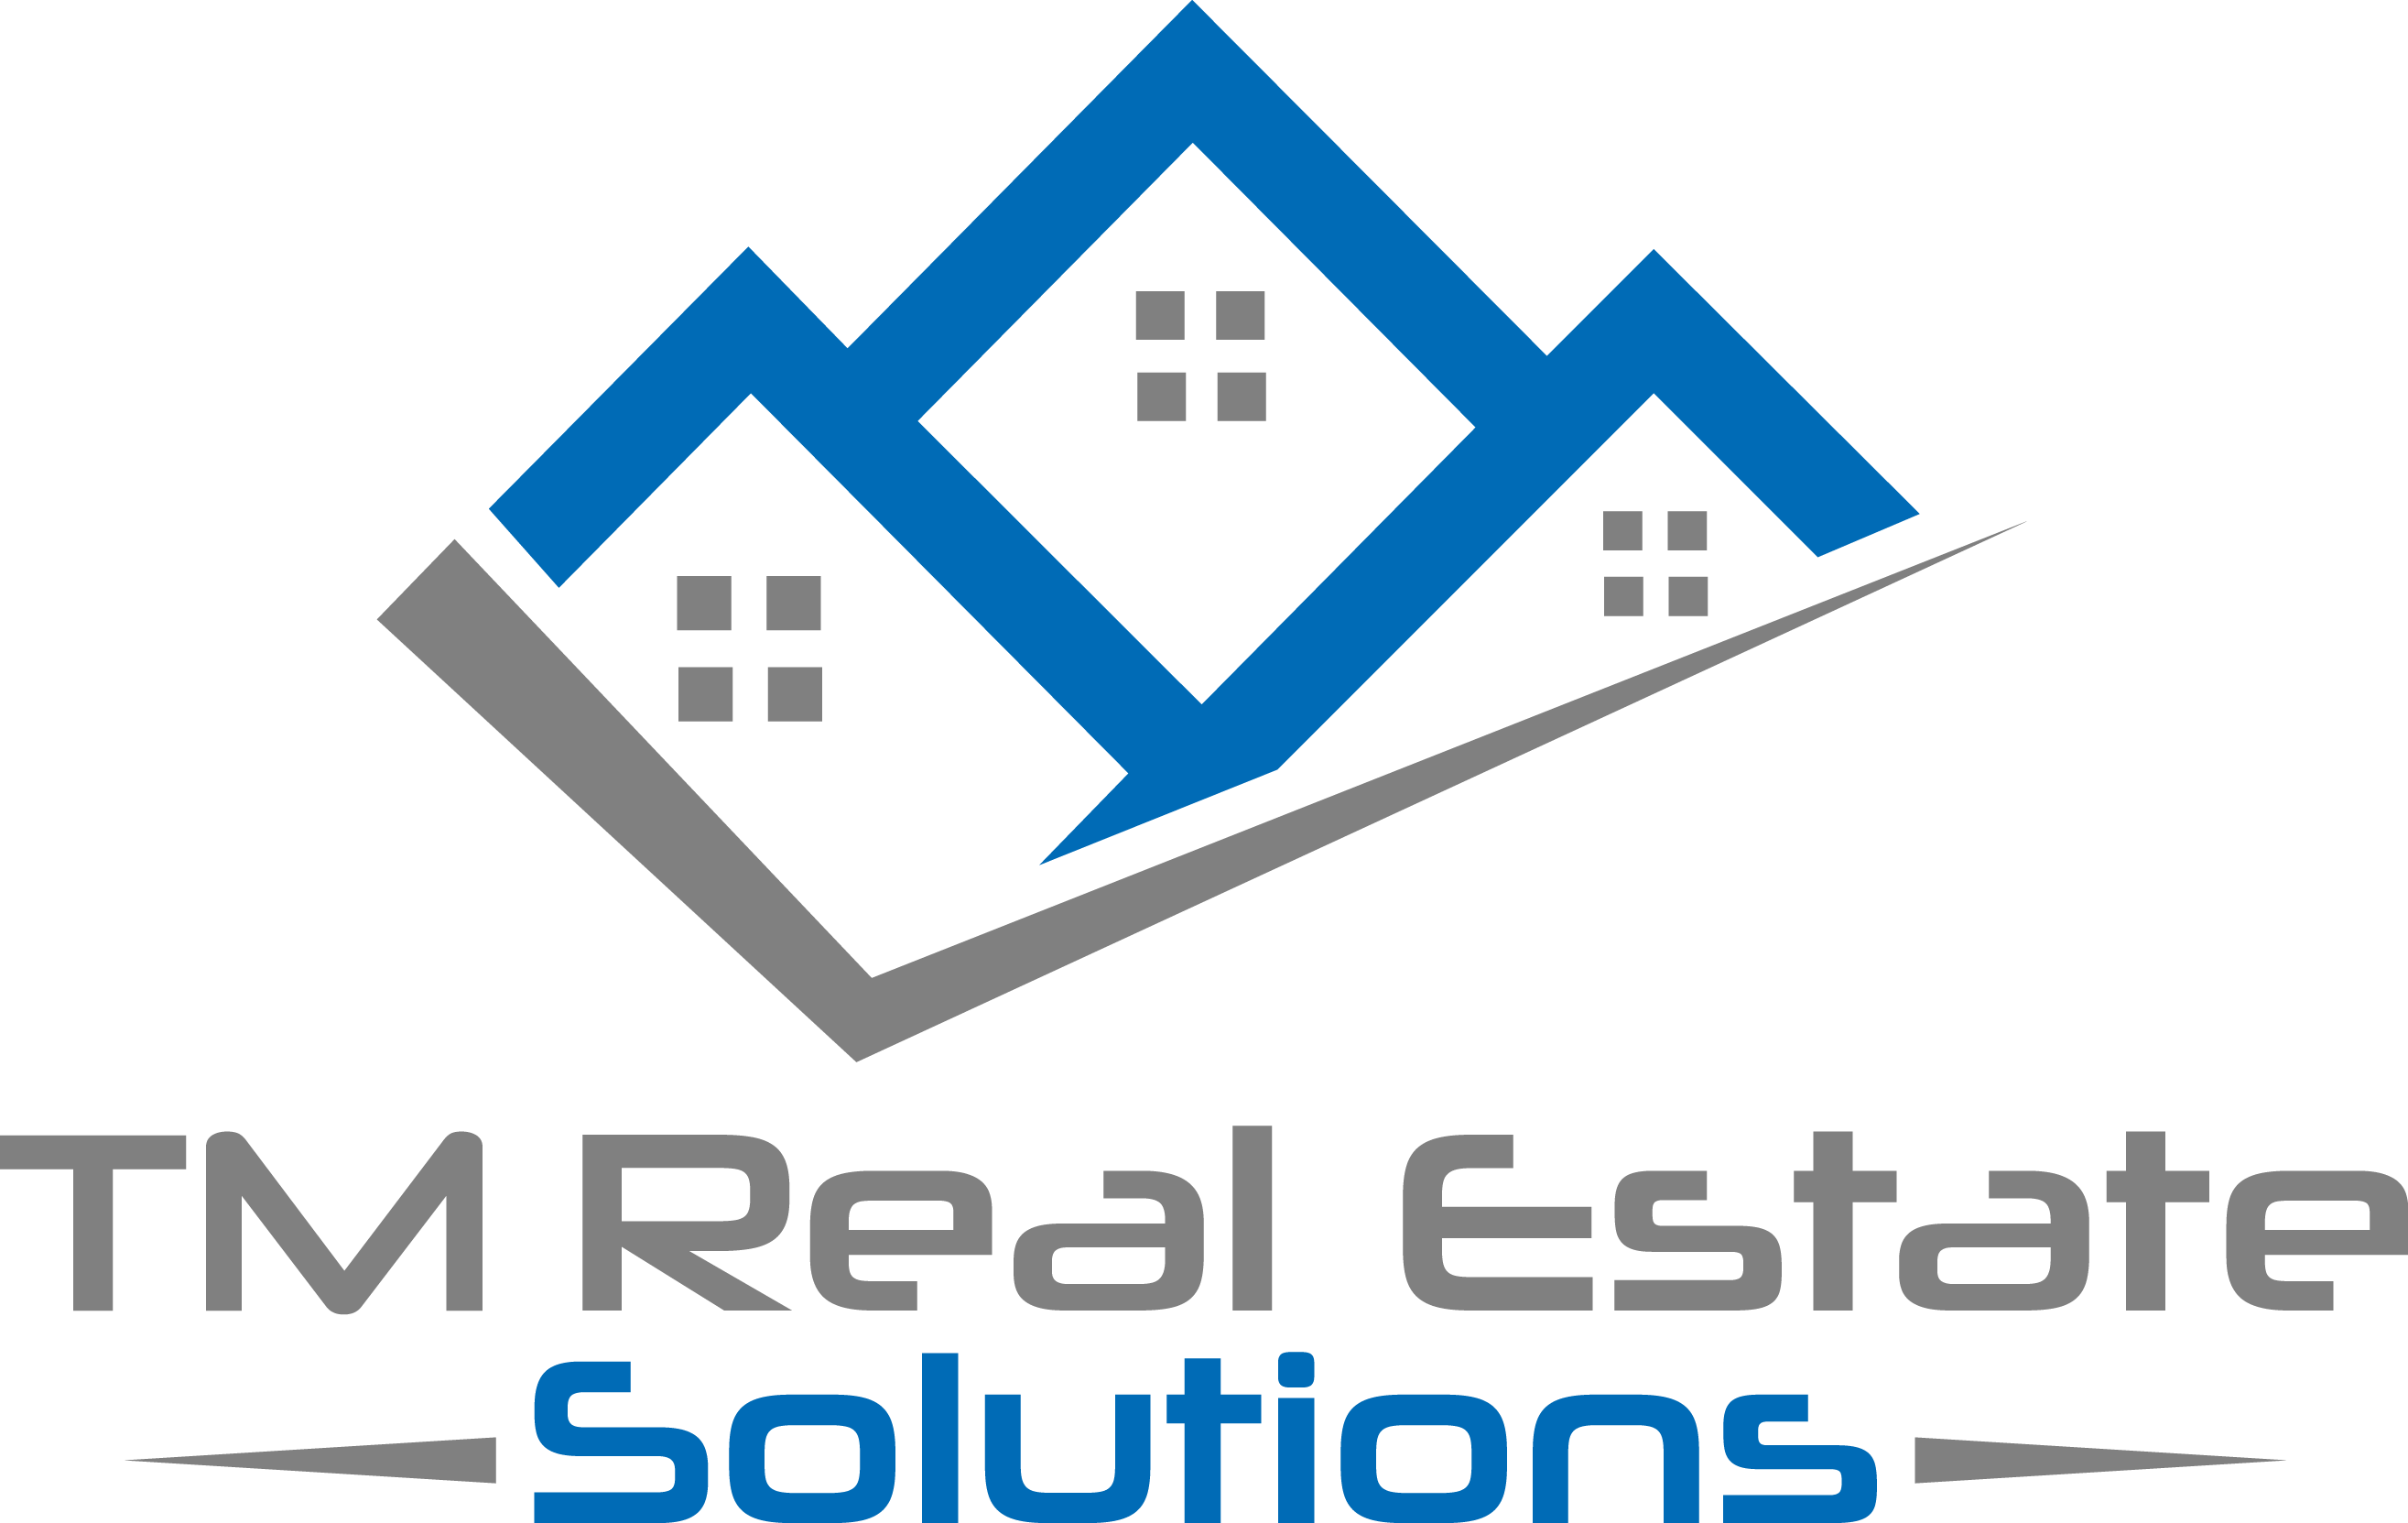 TM Real Estate Solutions